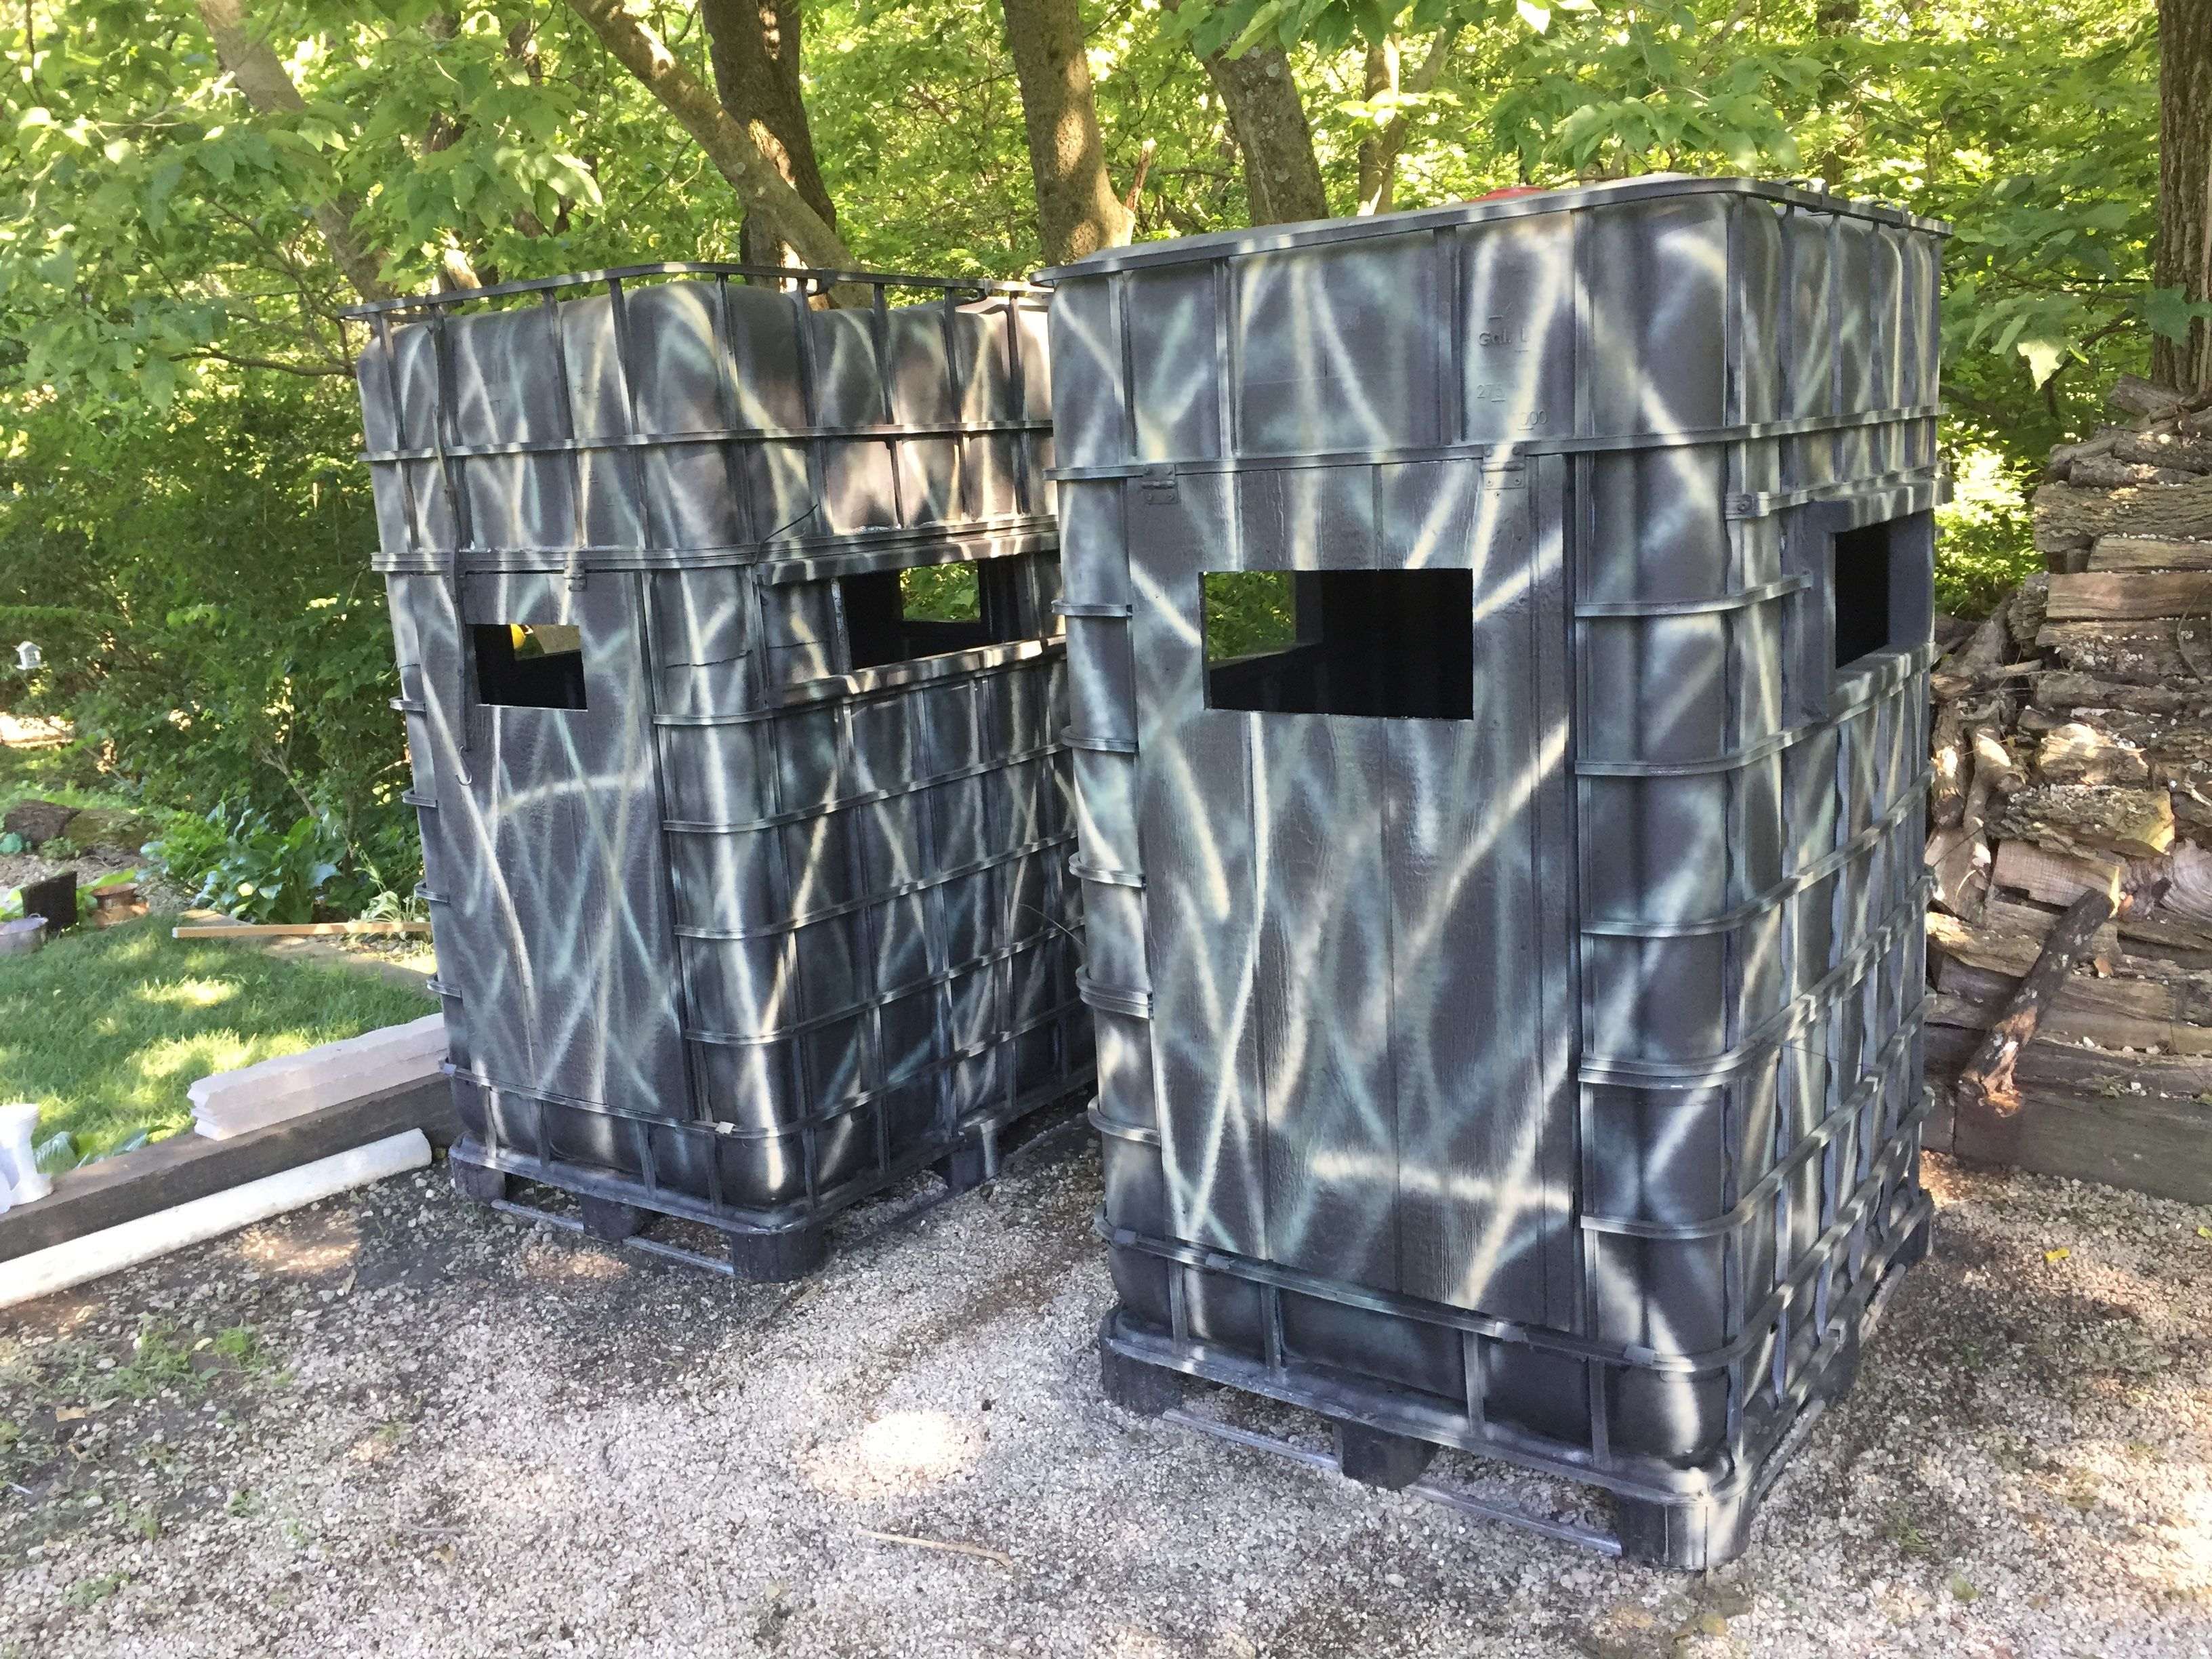 Made These 2 Deer Ground Blinds From 3 Ibc Totes I Hope To Have A Step By Step Soon Deer Hunting Blinds Deer Stand Deer Hunting